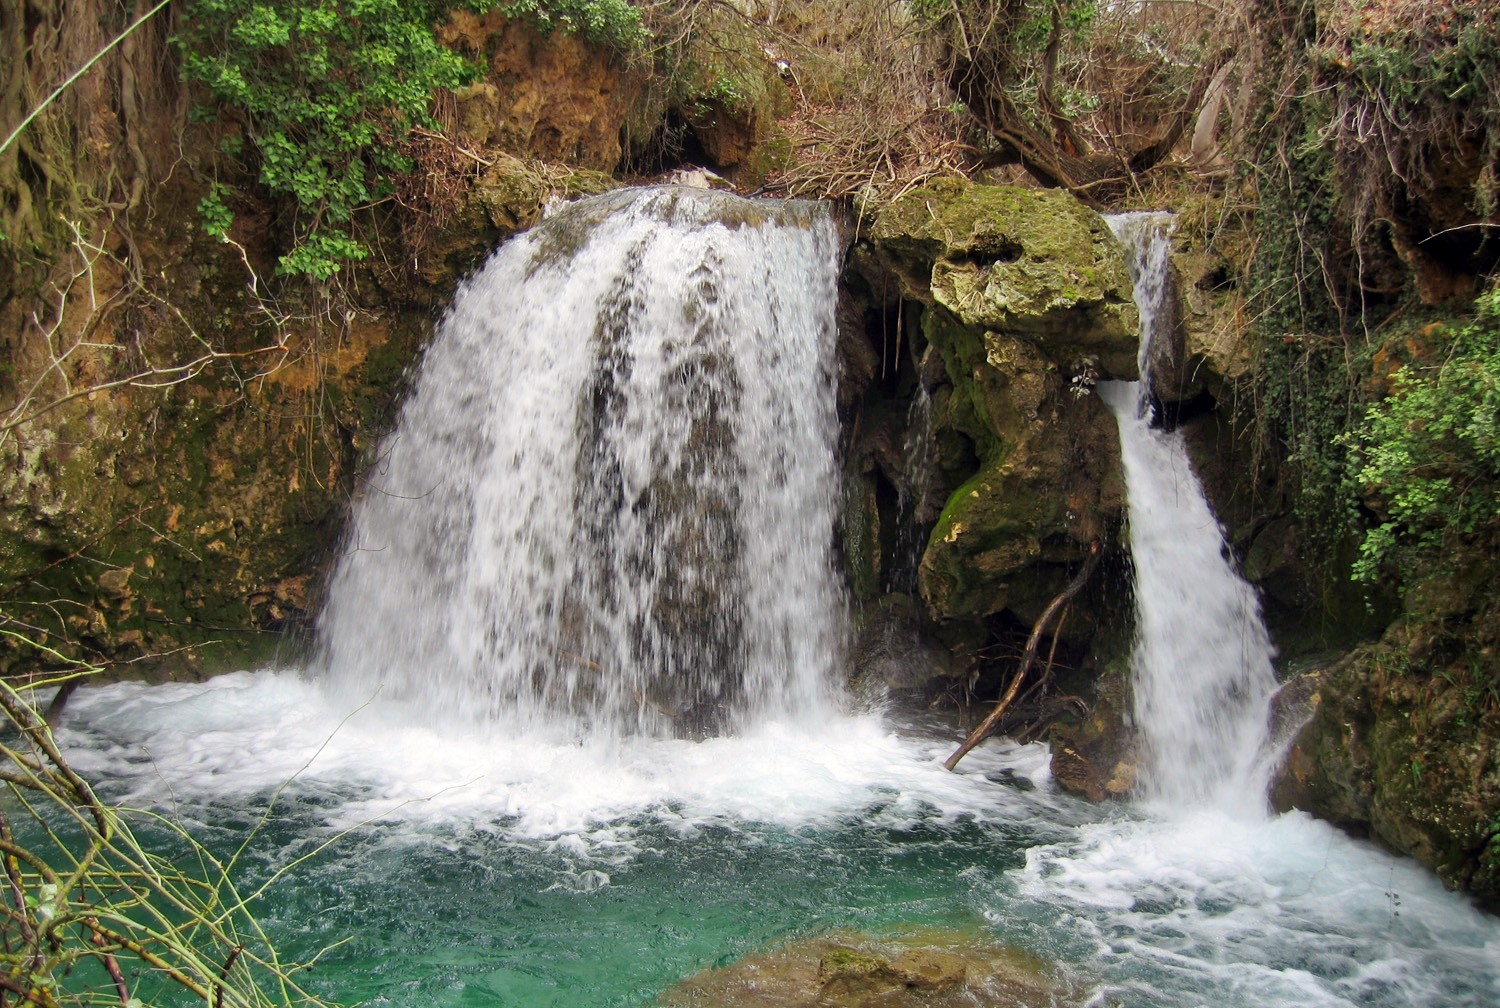 A Waterfall in the Buitre Canyon - Huéscar